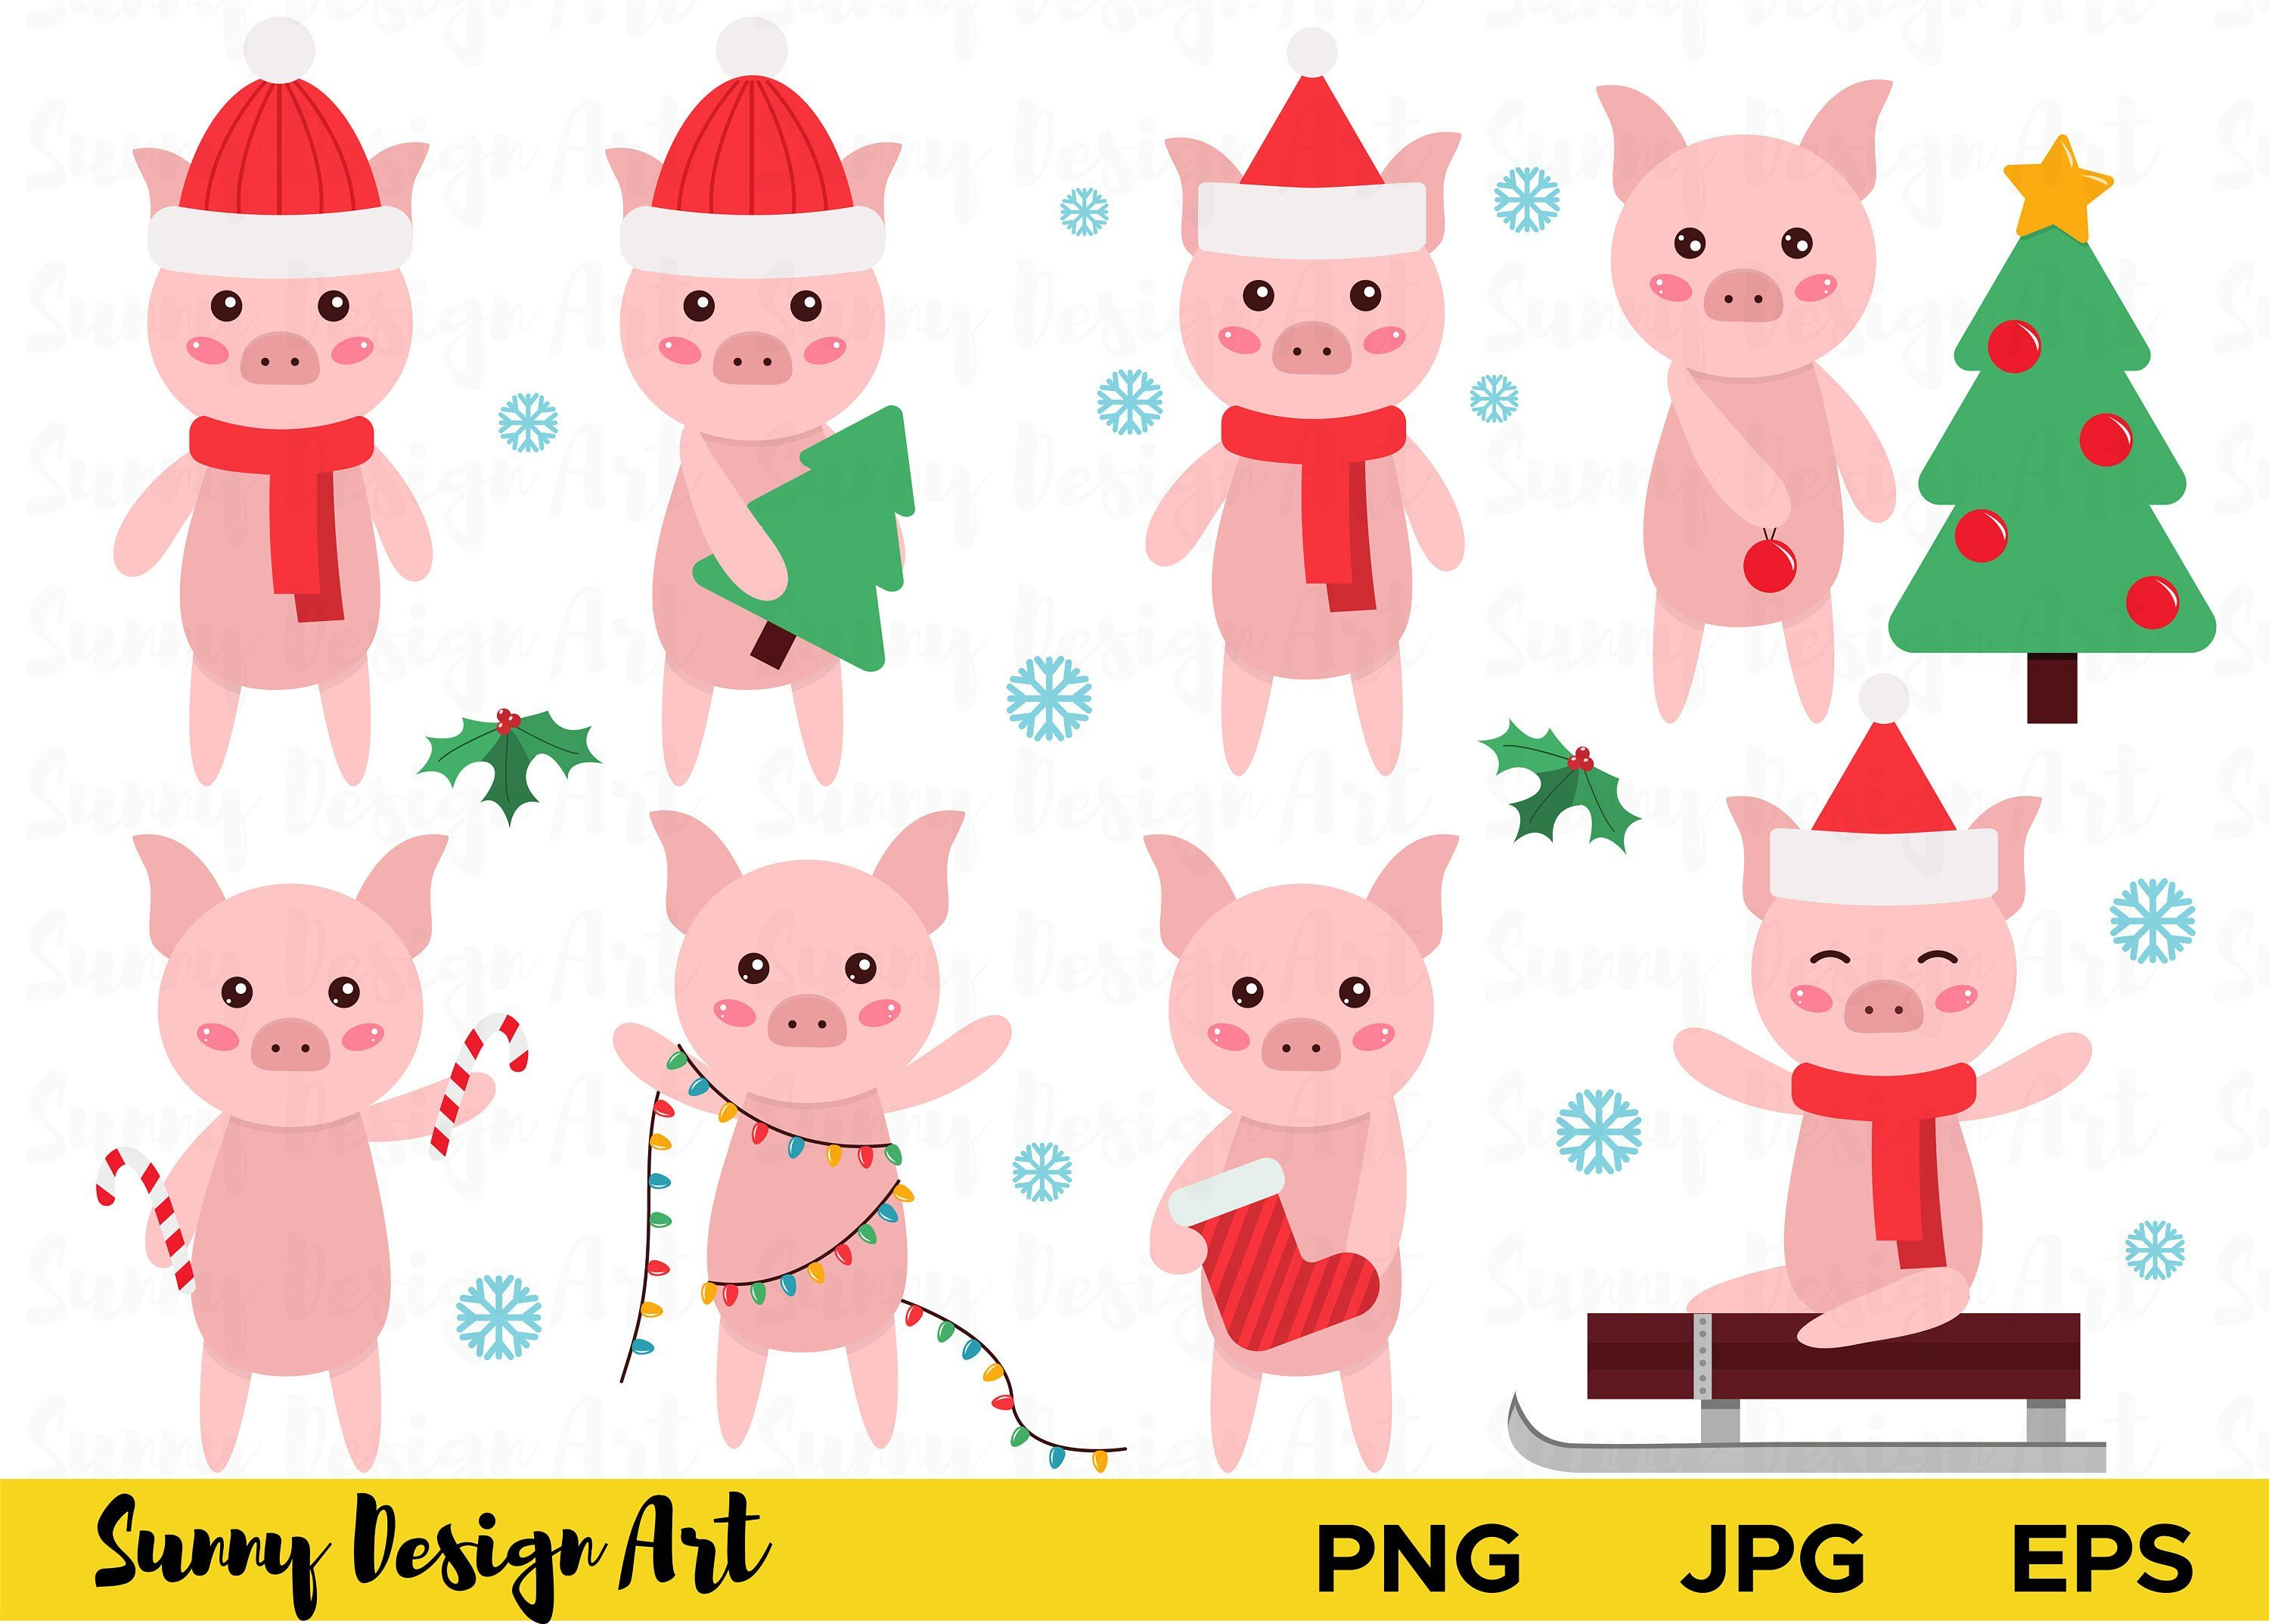 Cute pigs new year. Pig clipart christmas